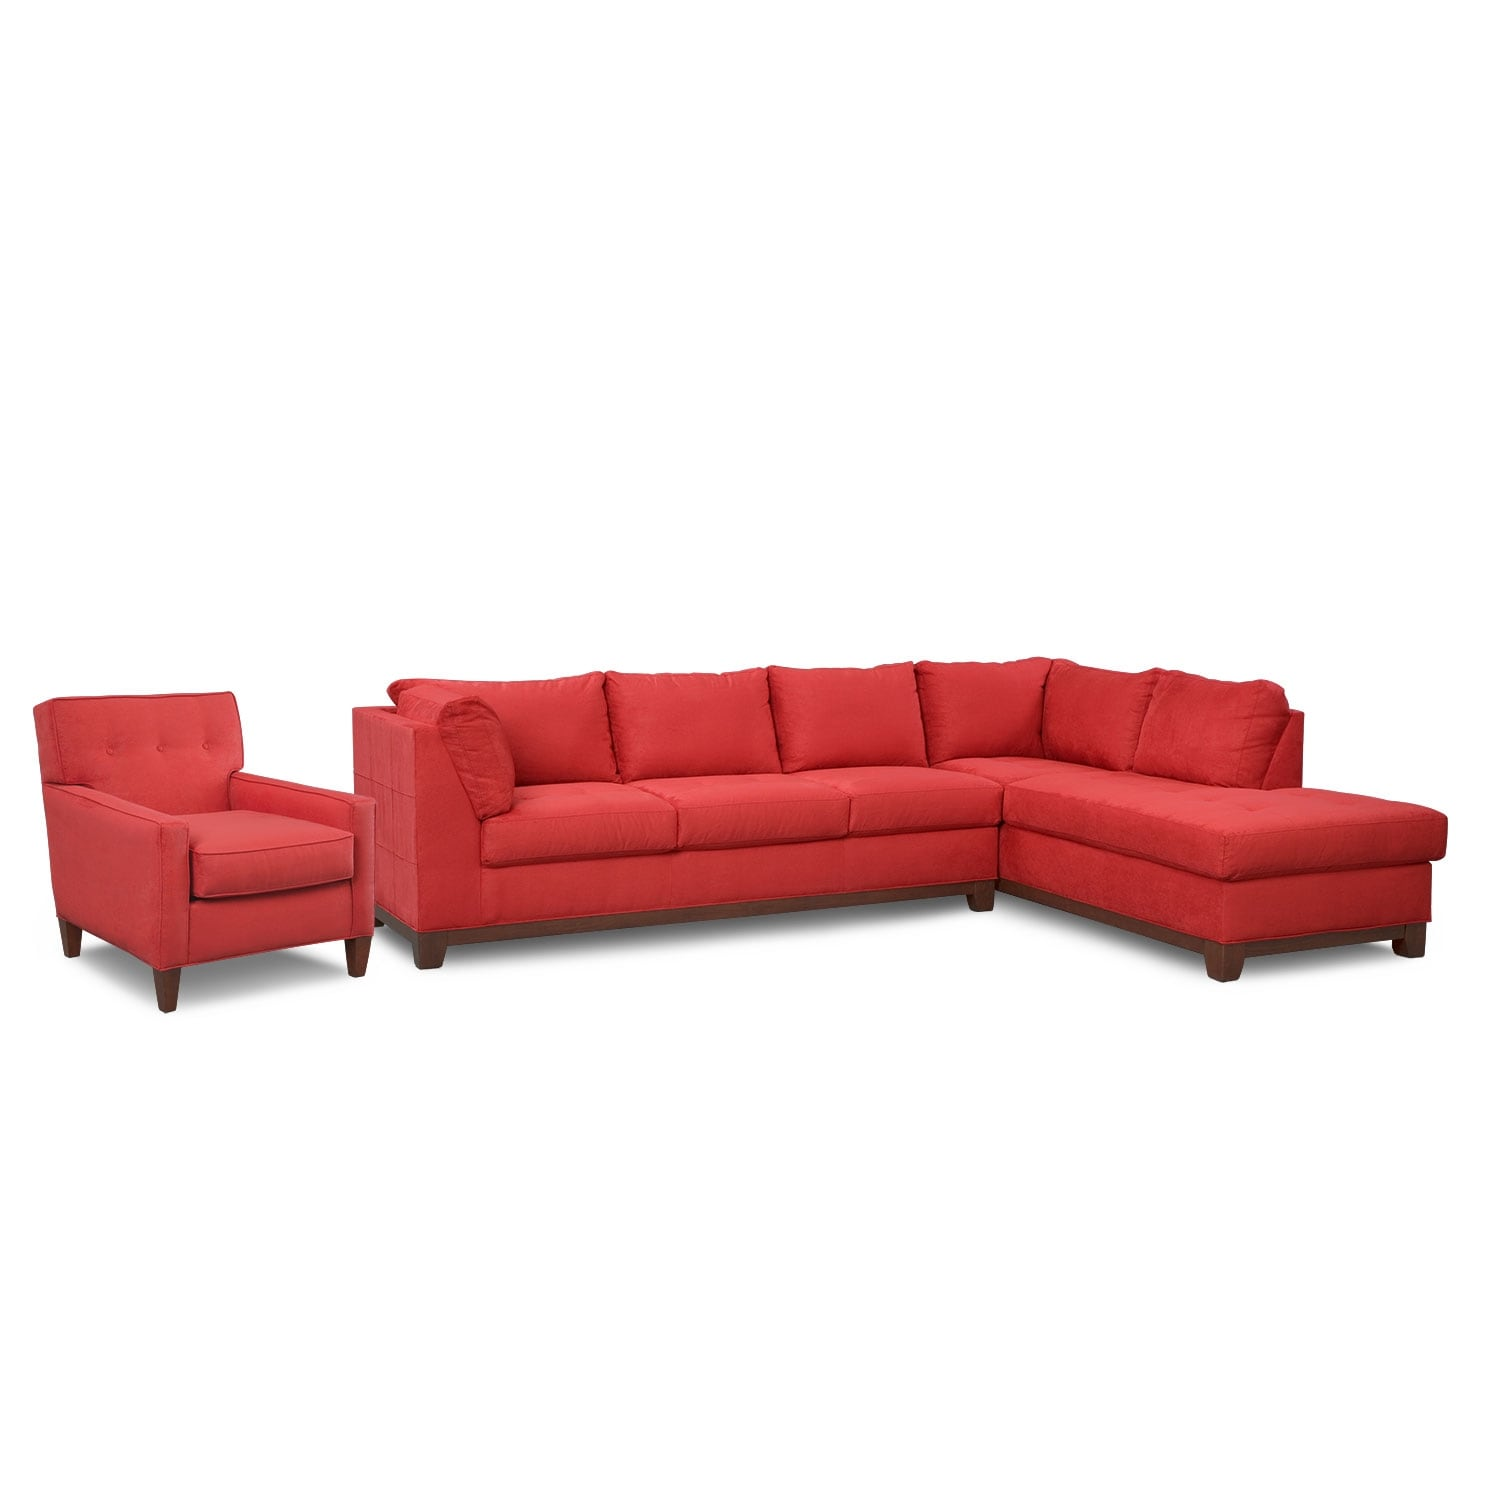 Living Room Furniture - Soho 2 Pc. Sectional and Accent Chair